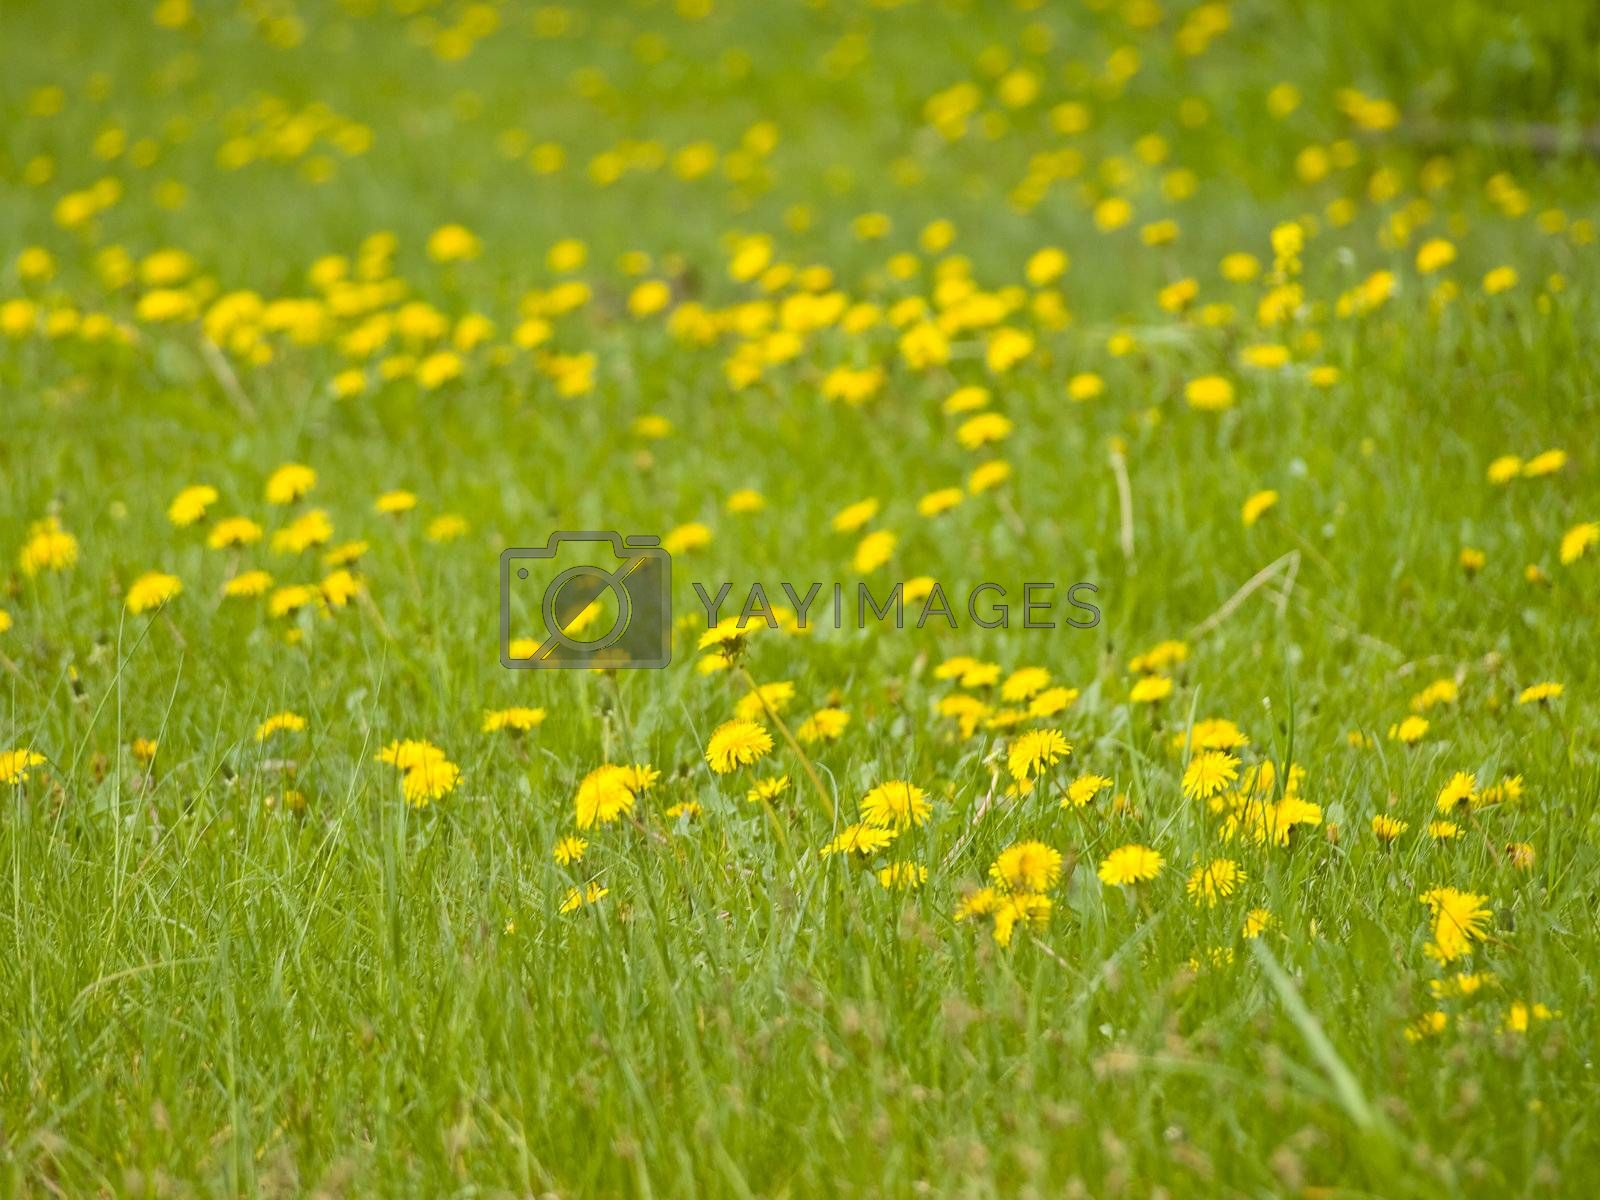 Many yellow spring dandelions at the green grass